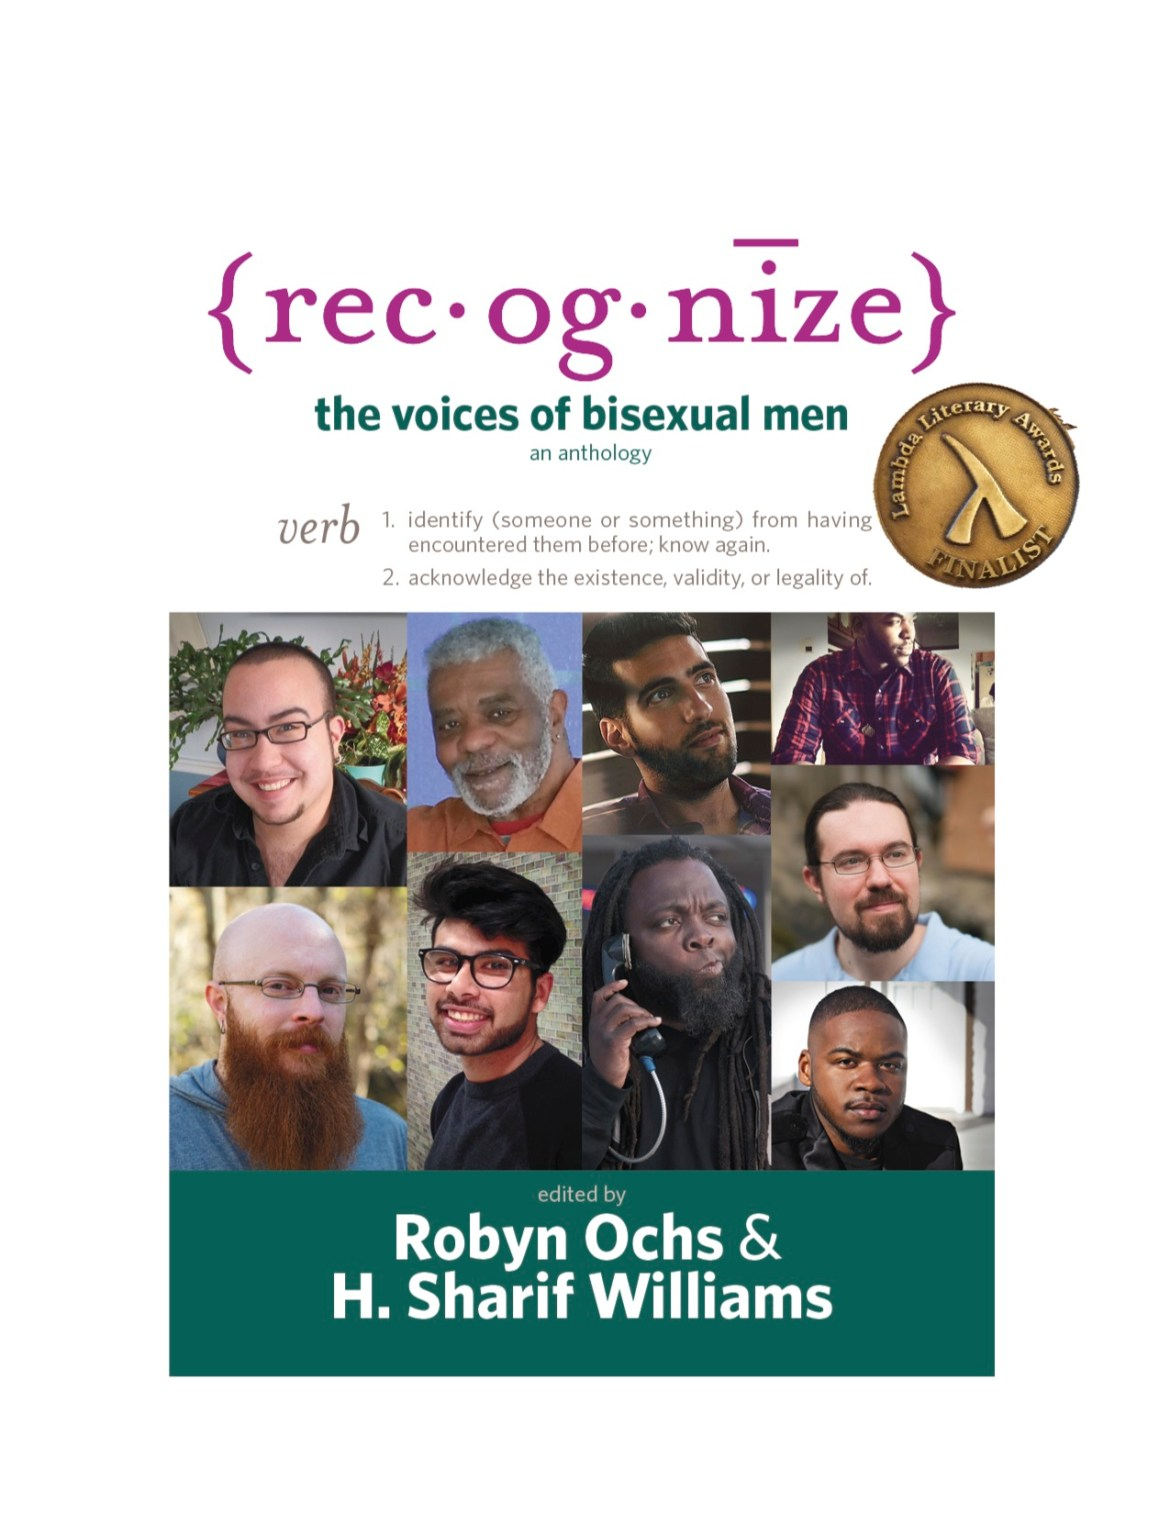 RecognizeBiMen: A Social Media Book Club